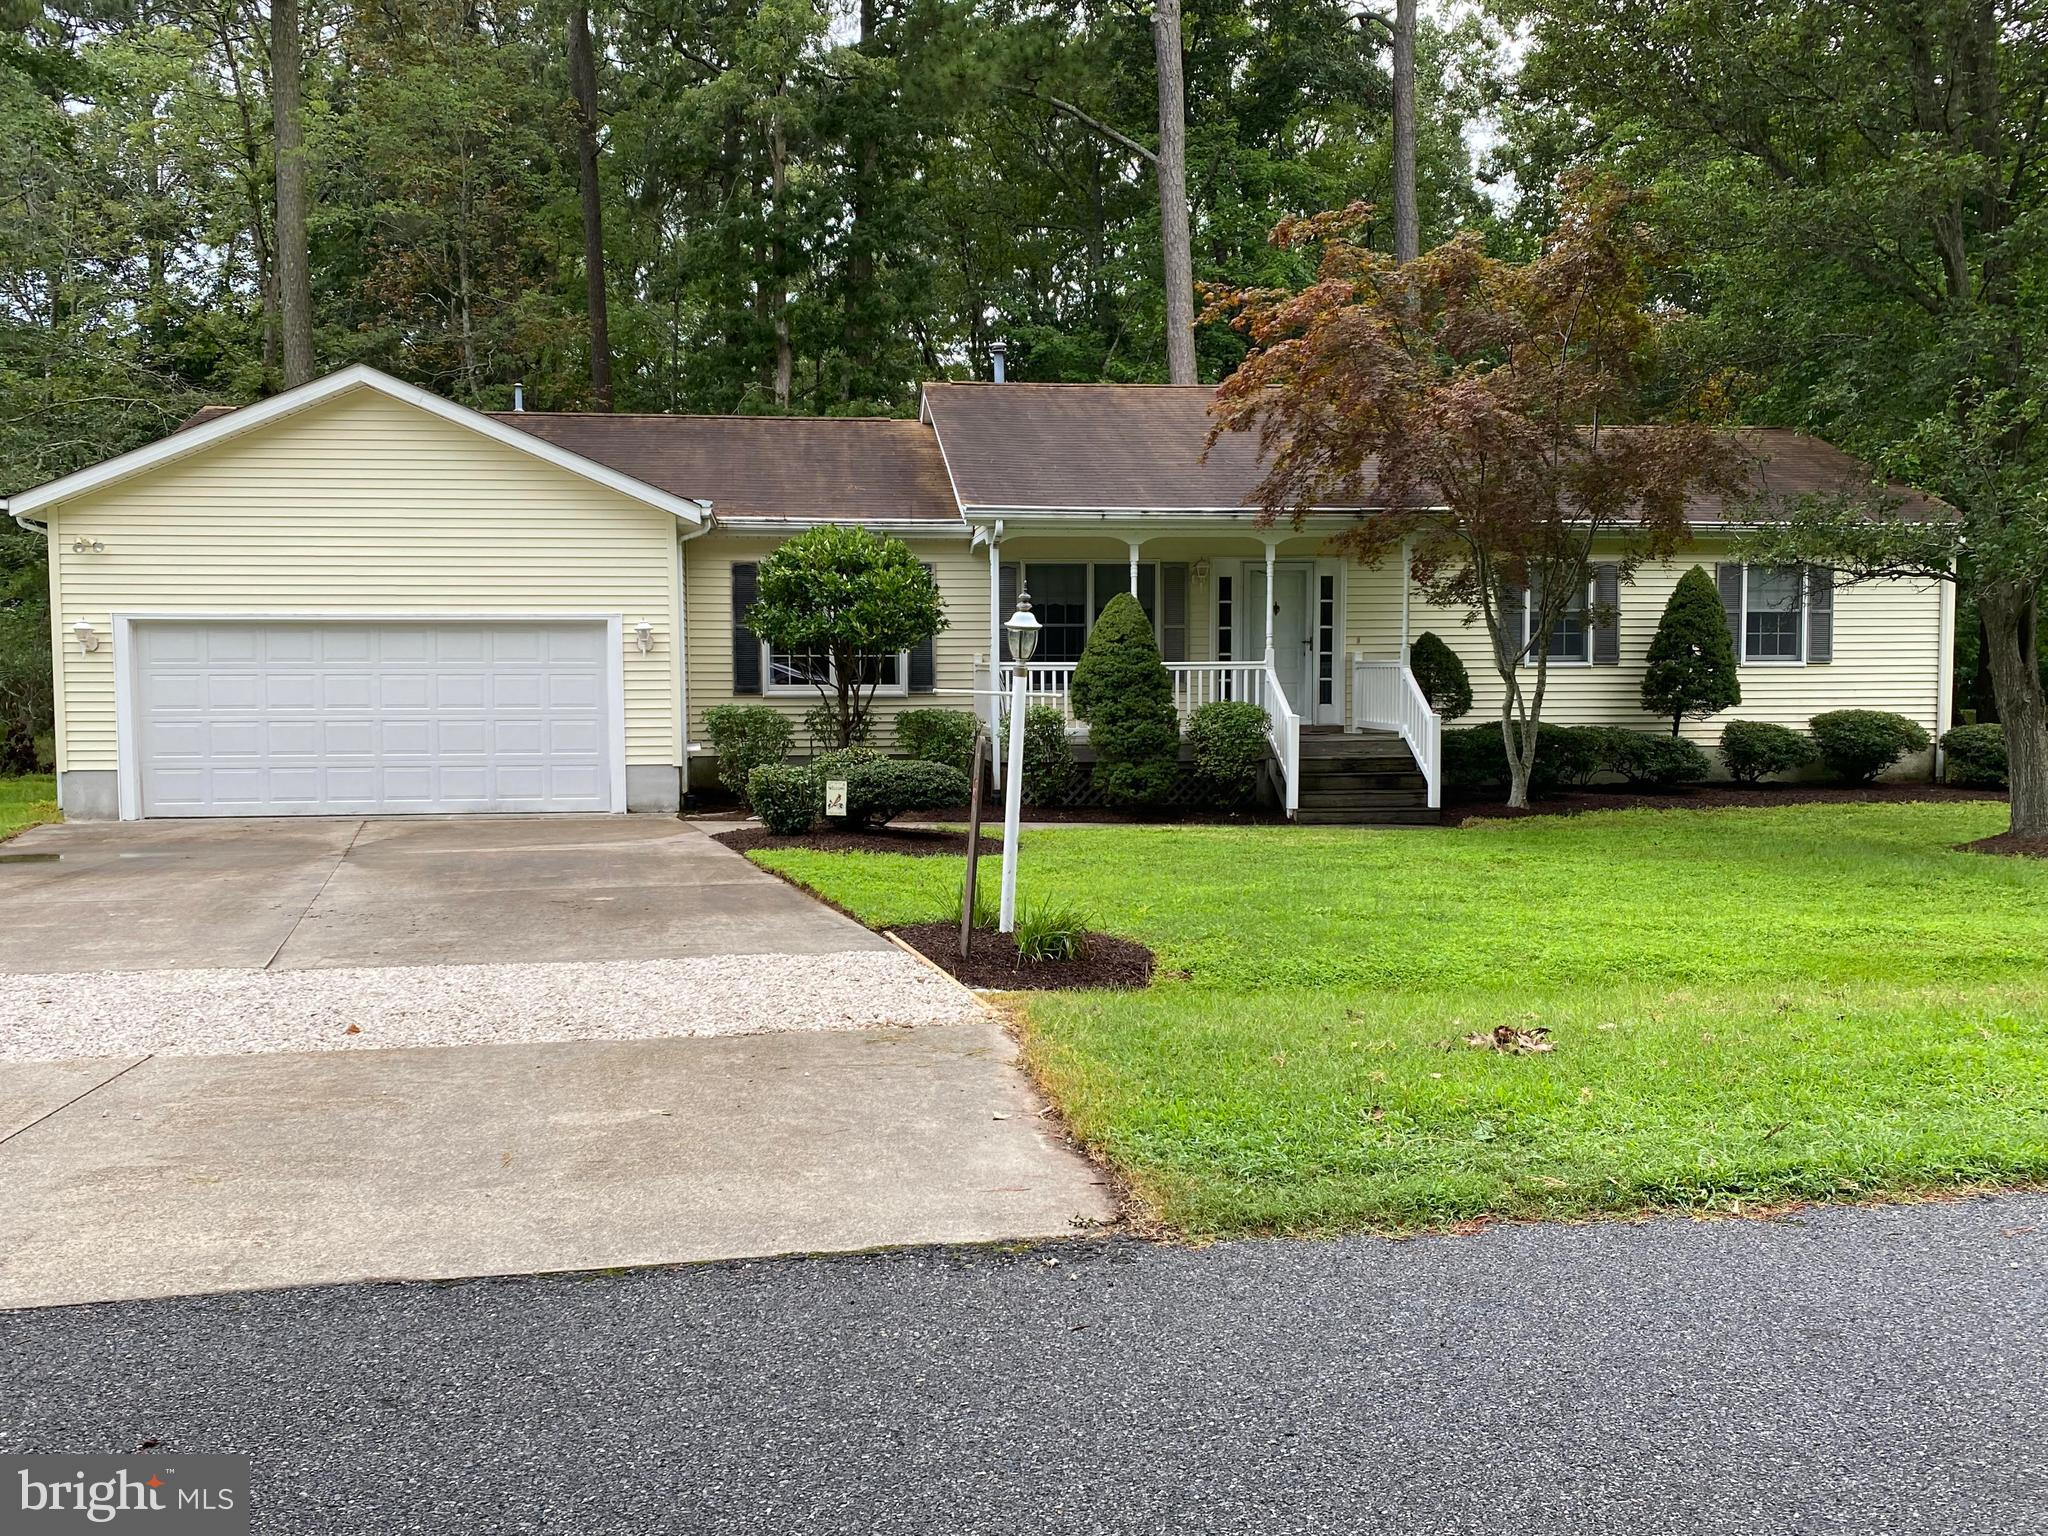 Well maintained single family home with screened porch on rear with partially fenced rear yard and a